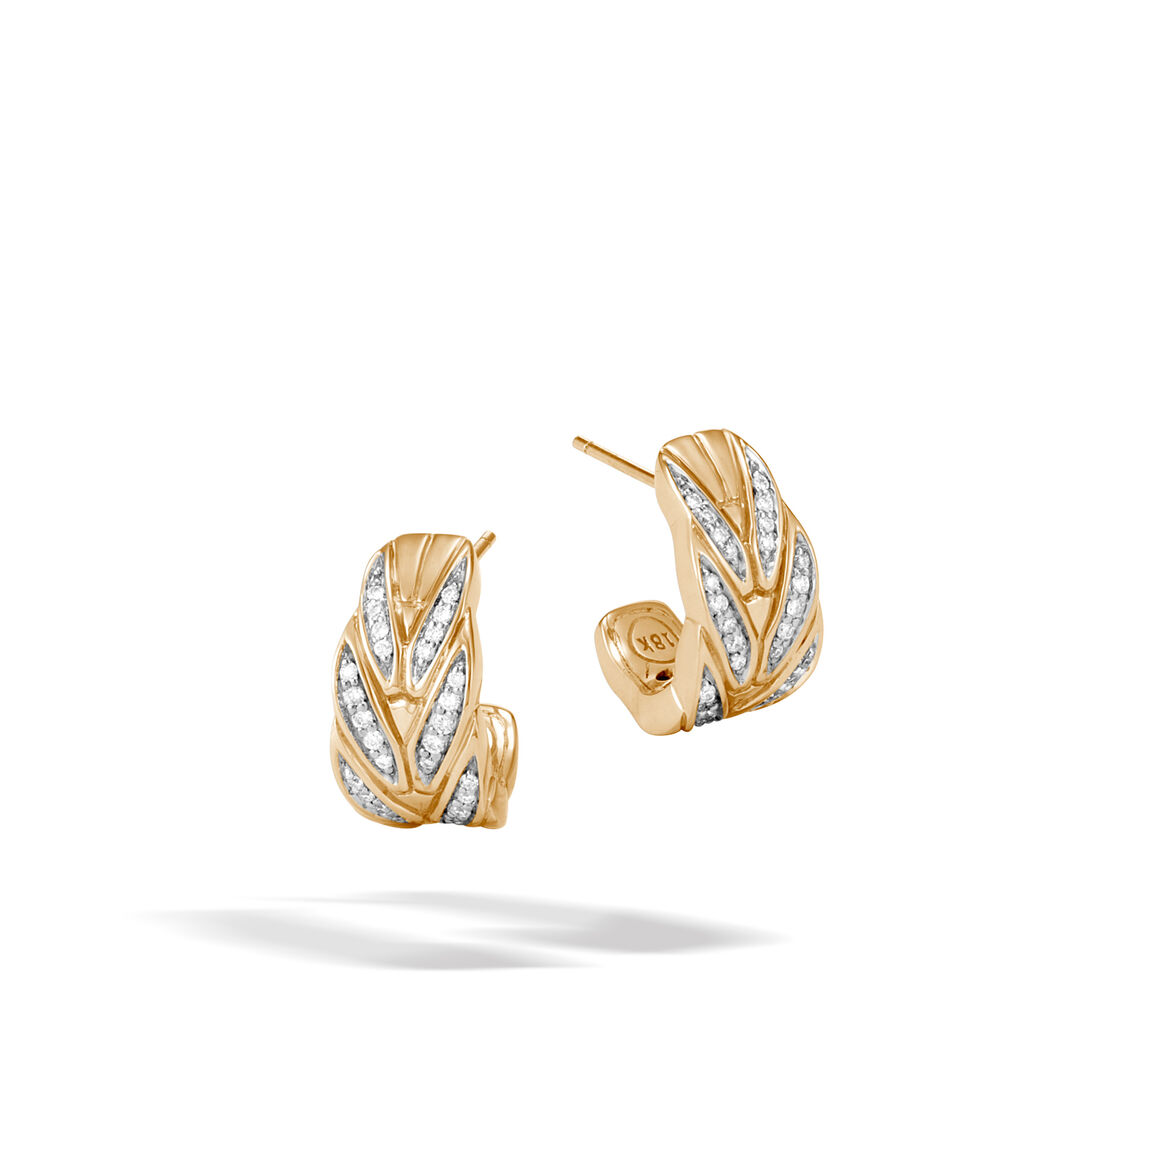 Modern Chain Small J Hoop Earring in 18K Gold with Diamonds